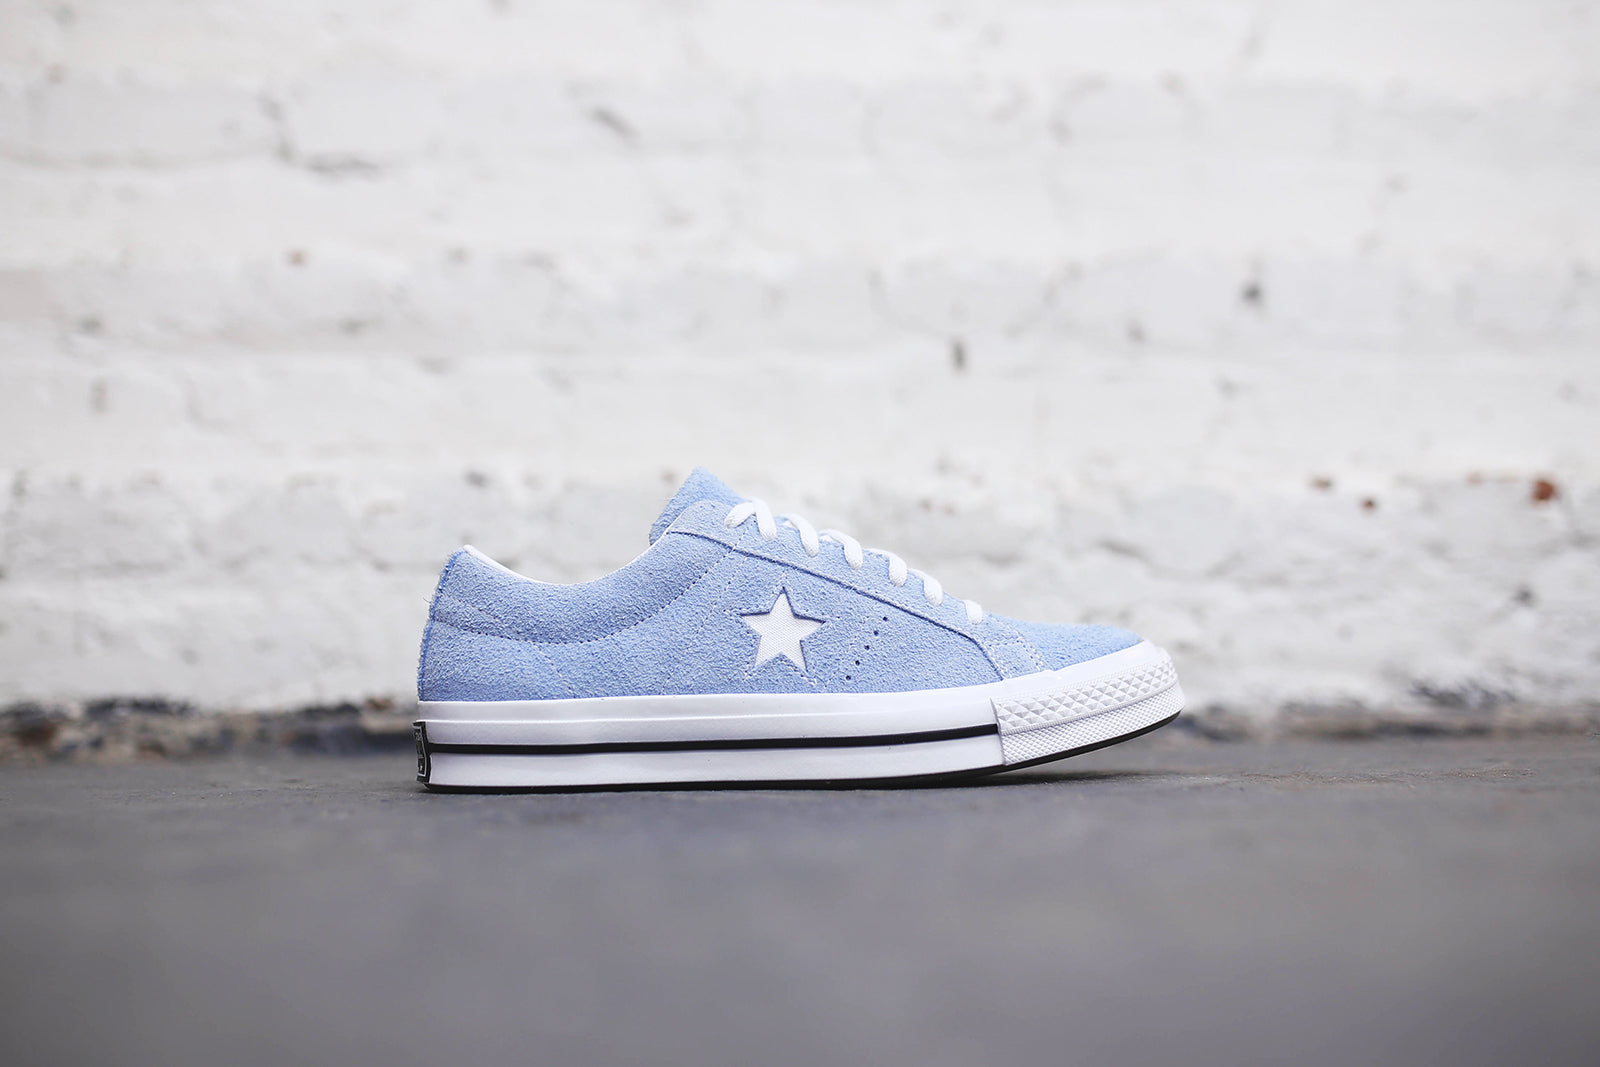 c51338fb3bd8 Converse One Star Ox Pack. March 09